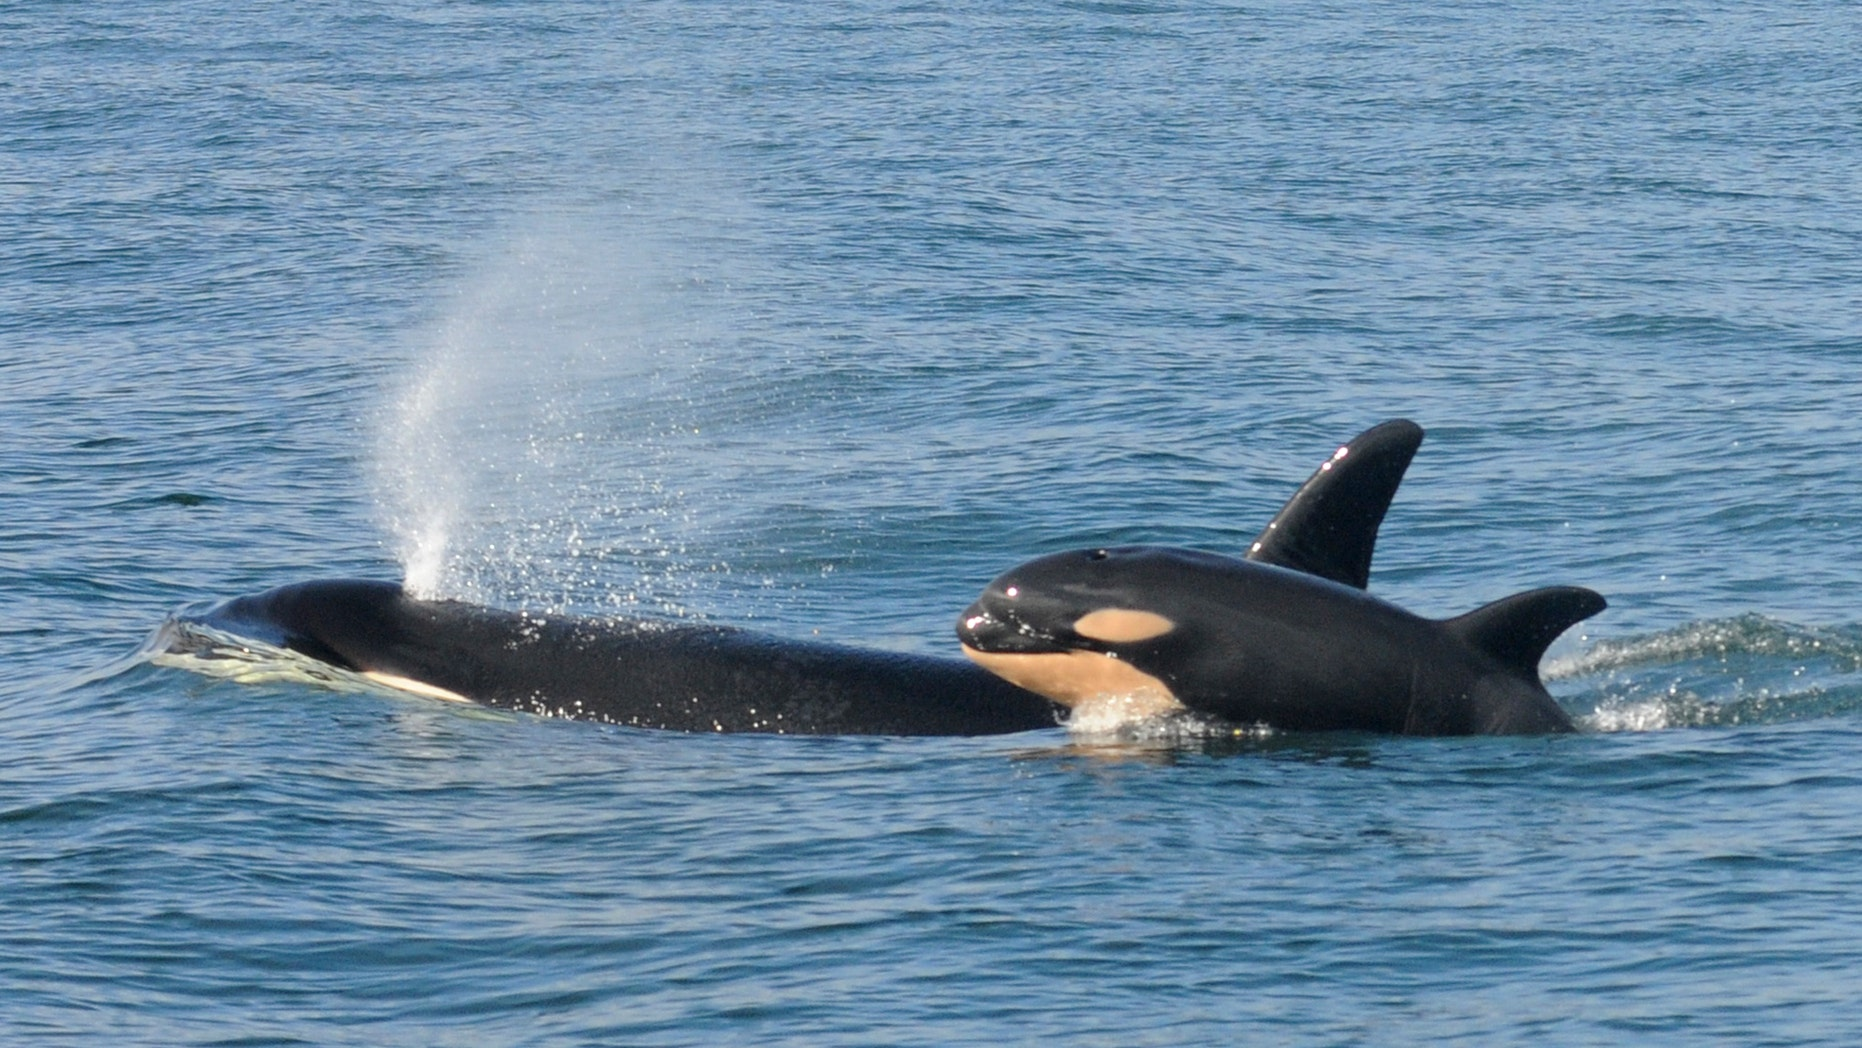 Incredible Drone Footage Shows Killer Whales Eating A Living Shark